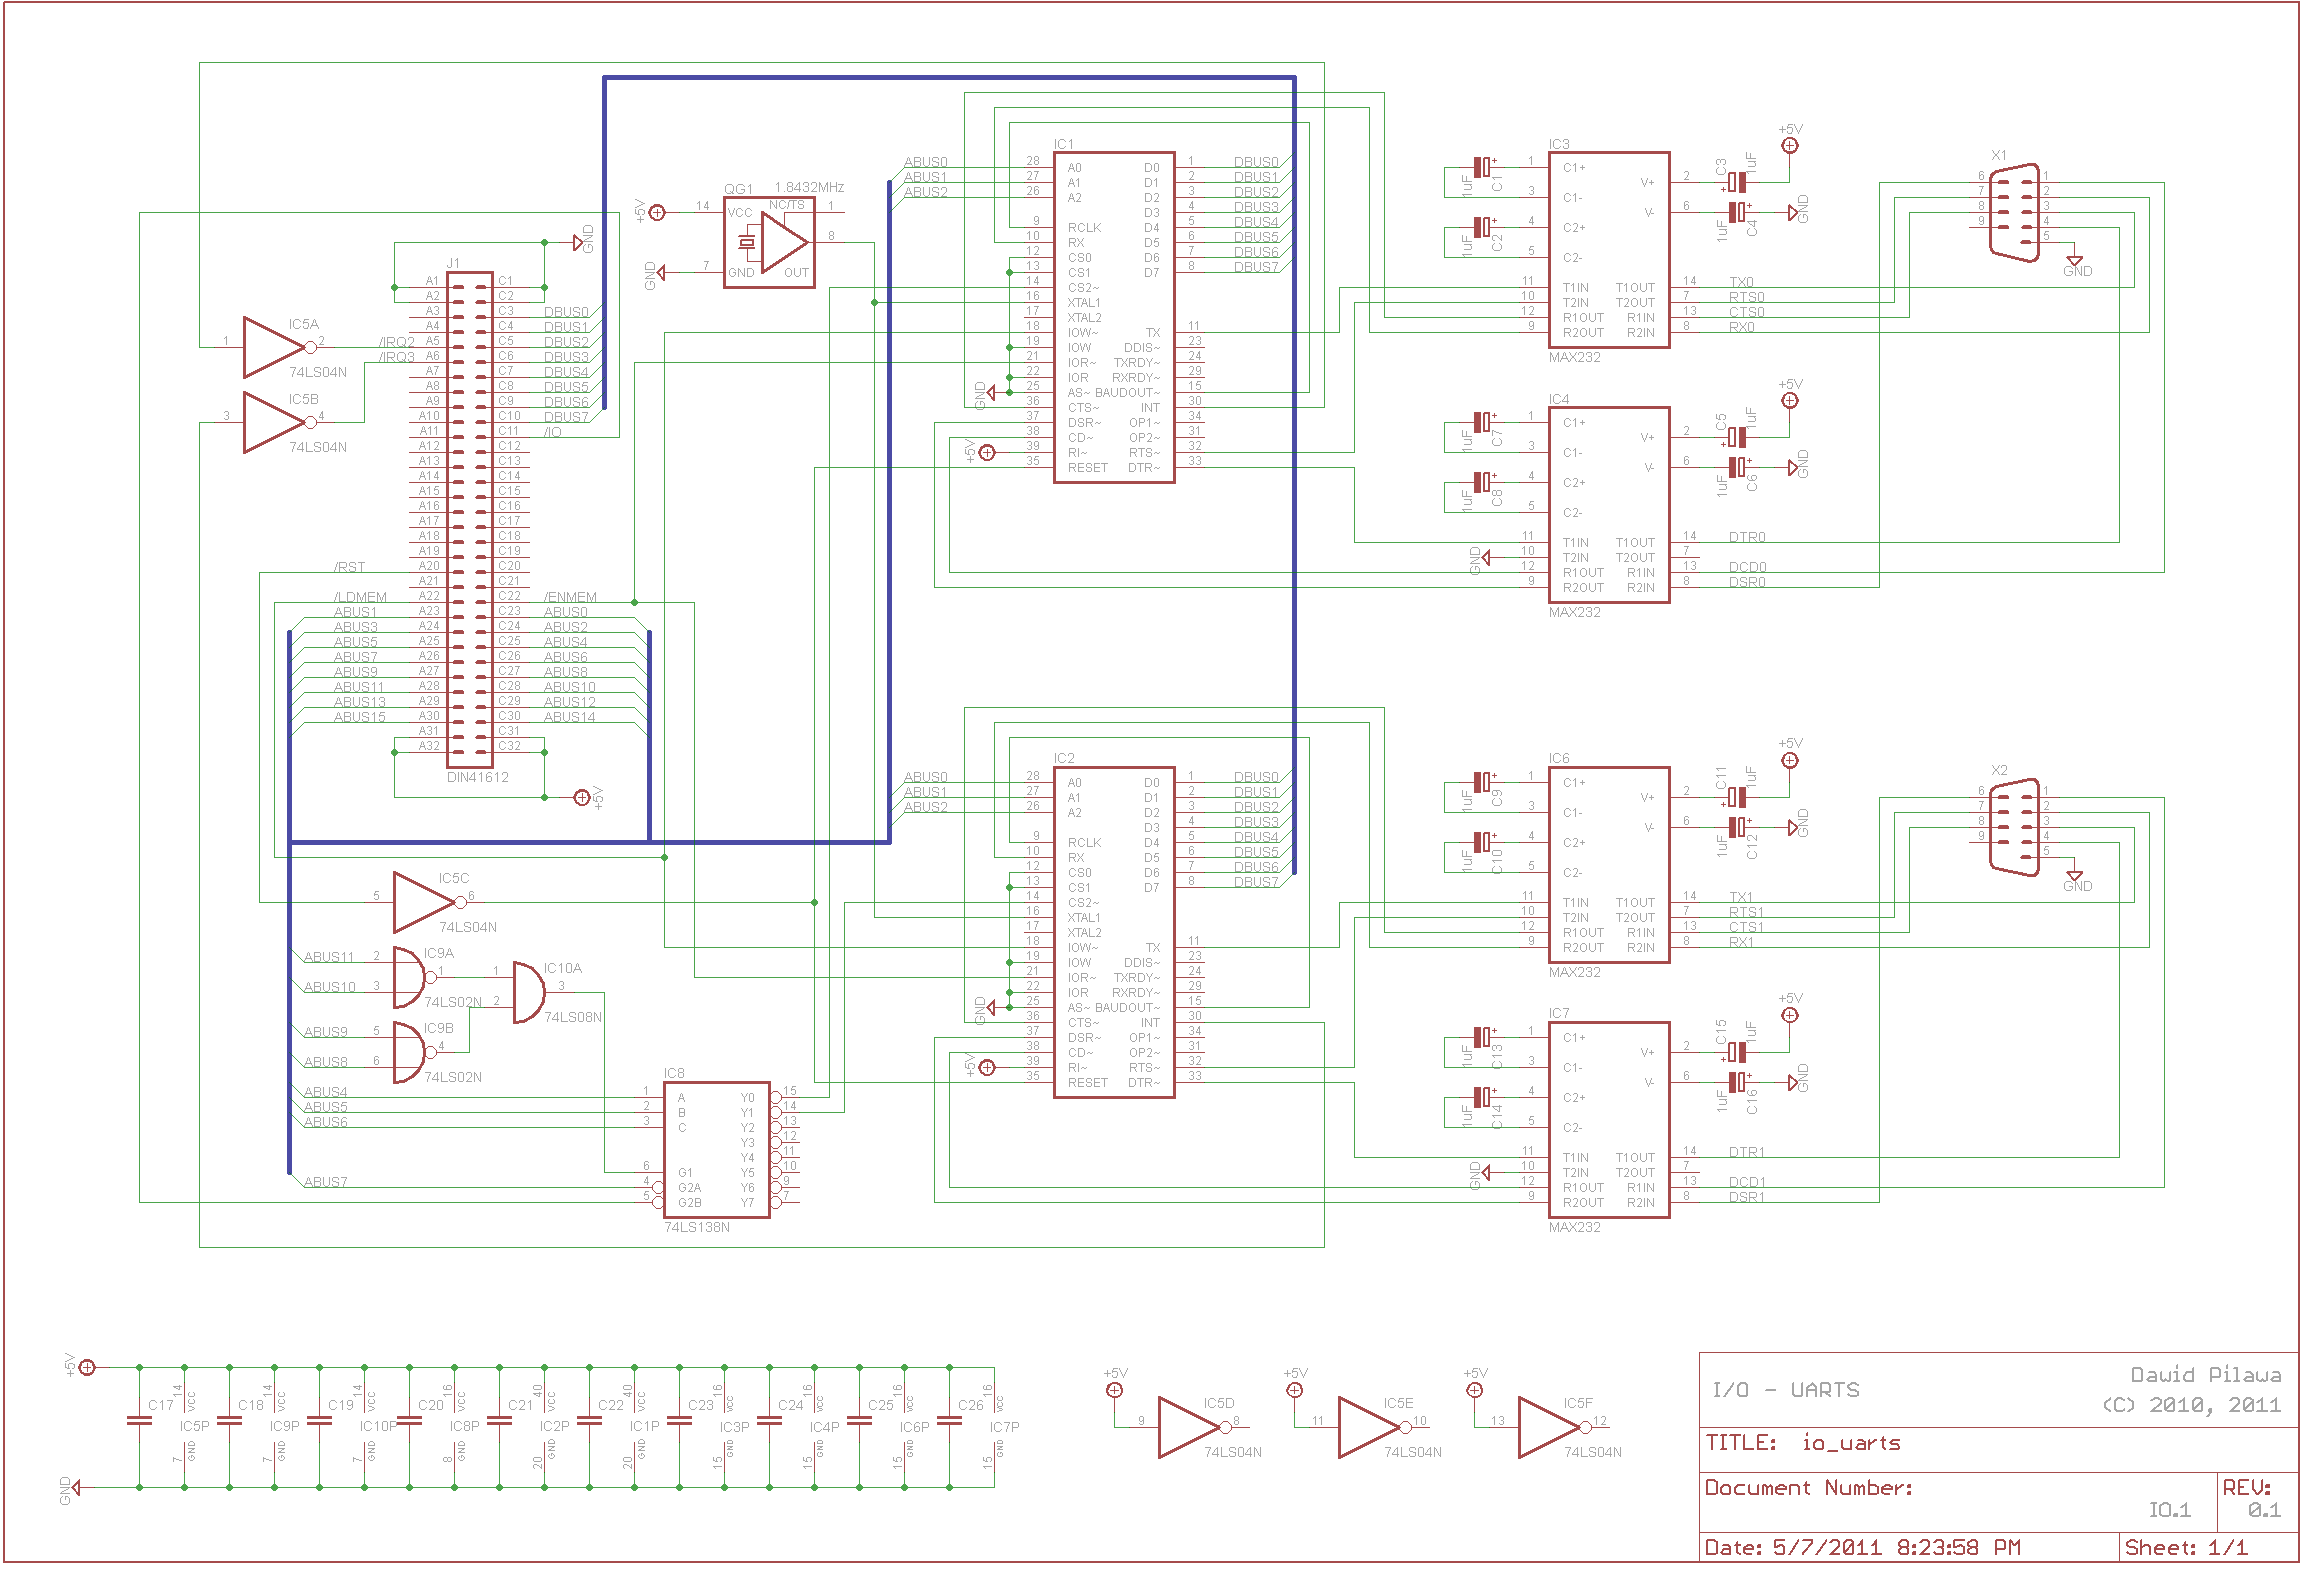 Bytec 16 Uarts Board Draft Schematics Circuit The Provides Two Serial Ports And Connects To Cpu By Means Of A 64 Wire Ribbon Din41612 Connector Like My Memory Card External